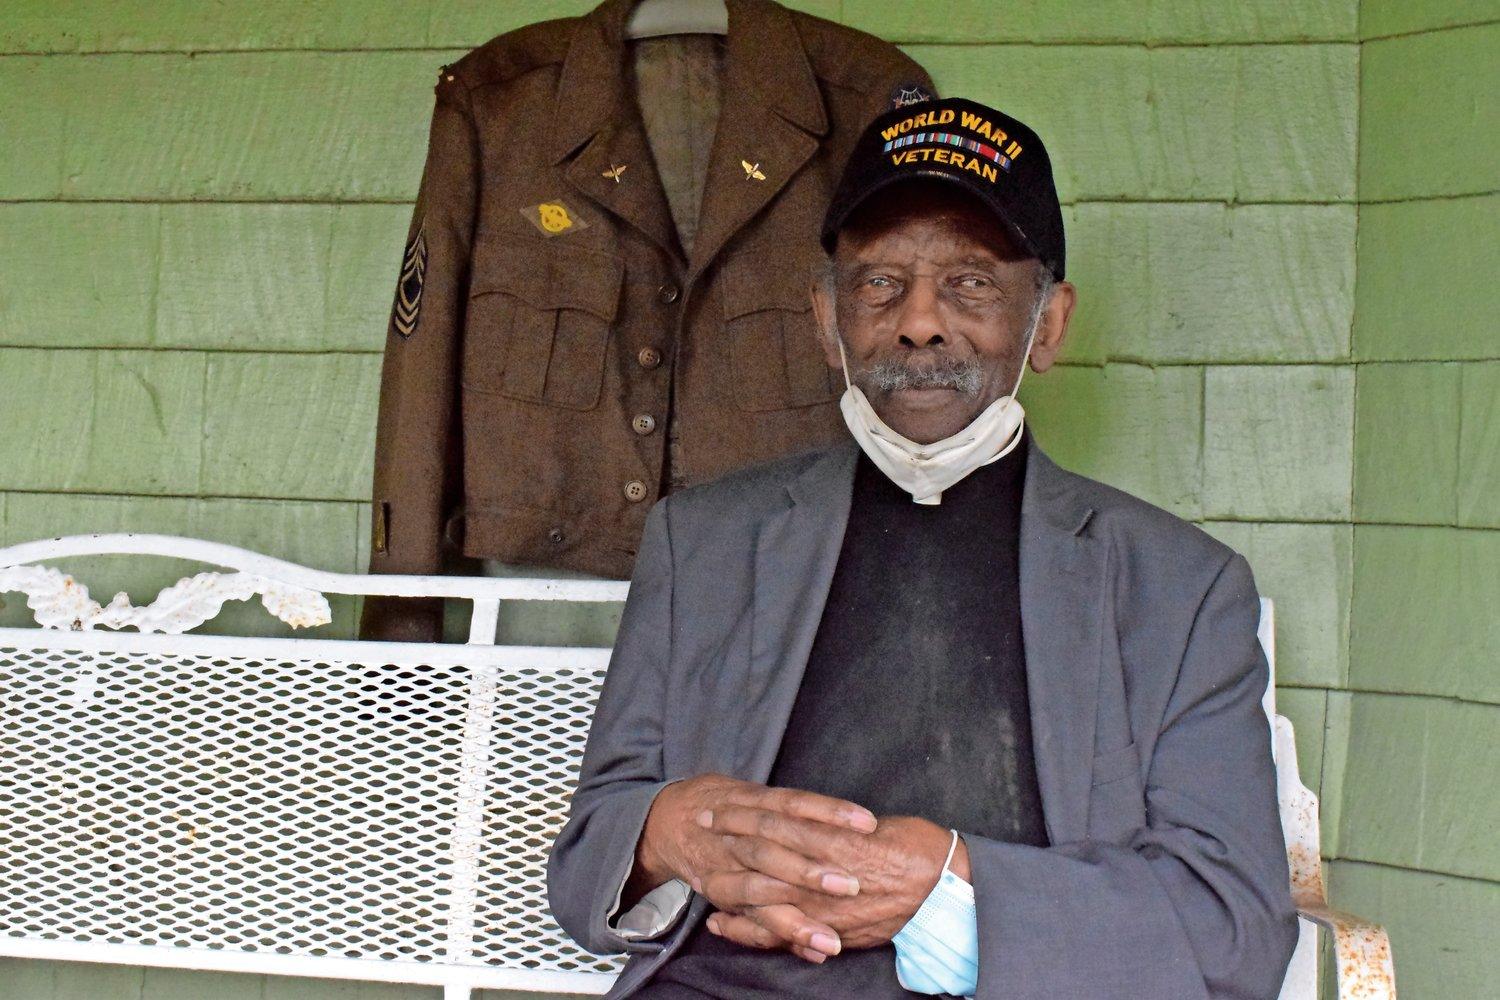 The Rev. Eugene Purvis, World War II veteran and local community leader, died on Feb. 5. at 97.